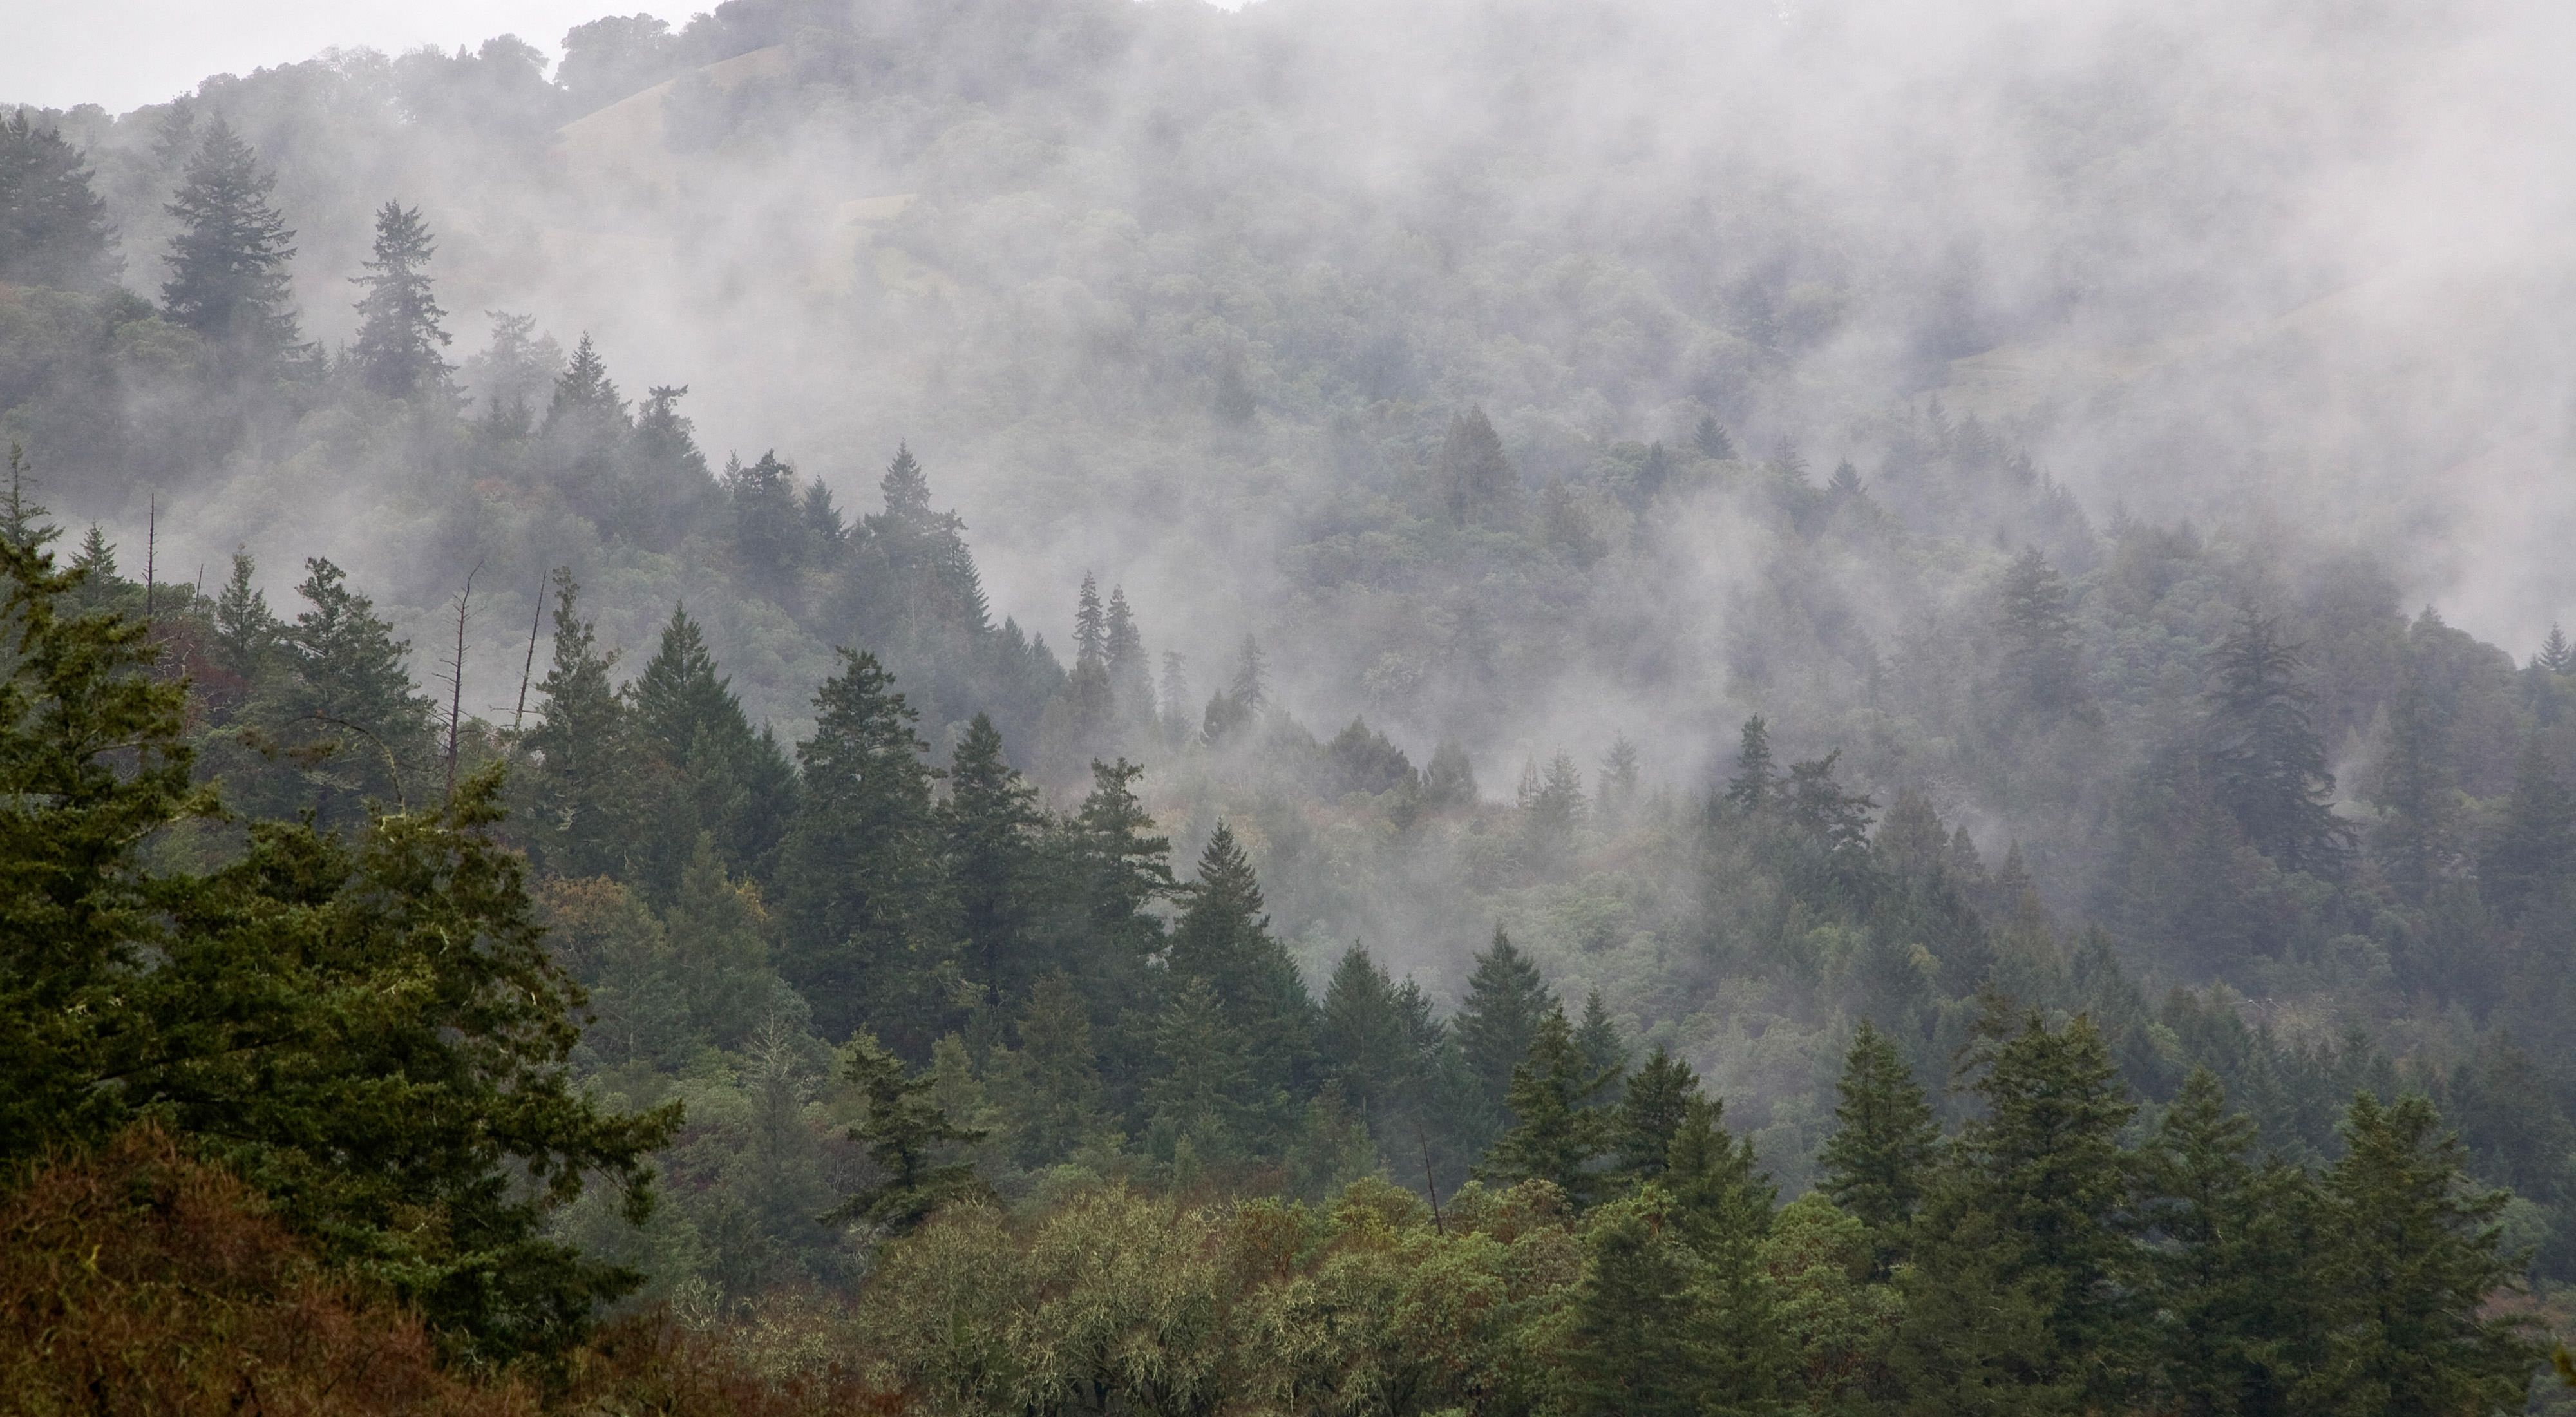 mist over a hilly pine forest